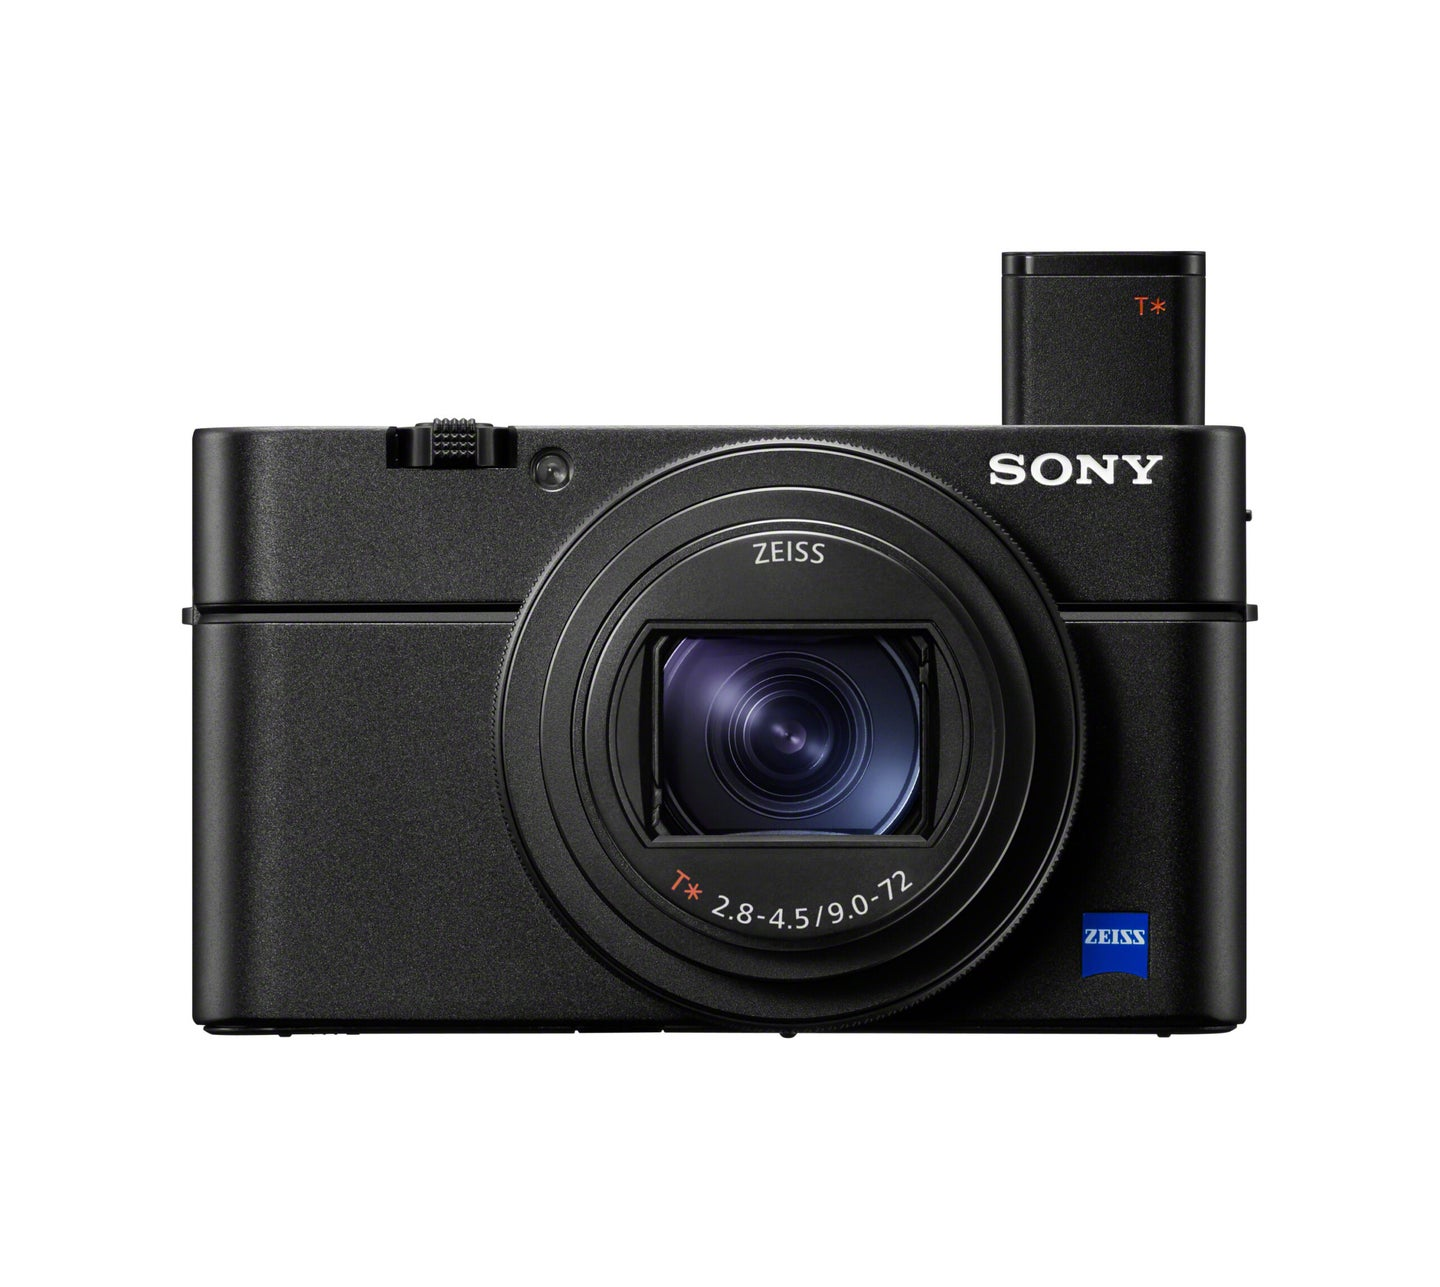 Sony's RX100 VII camera is a super-compact powerhouse